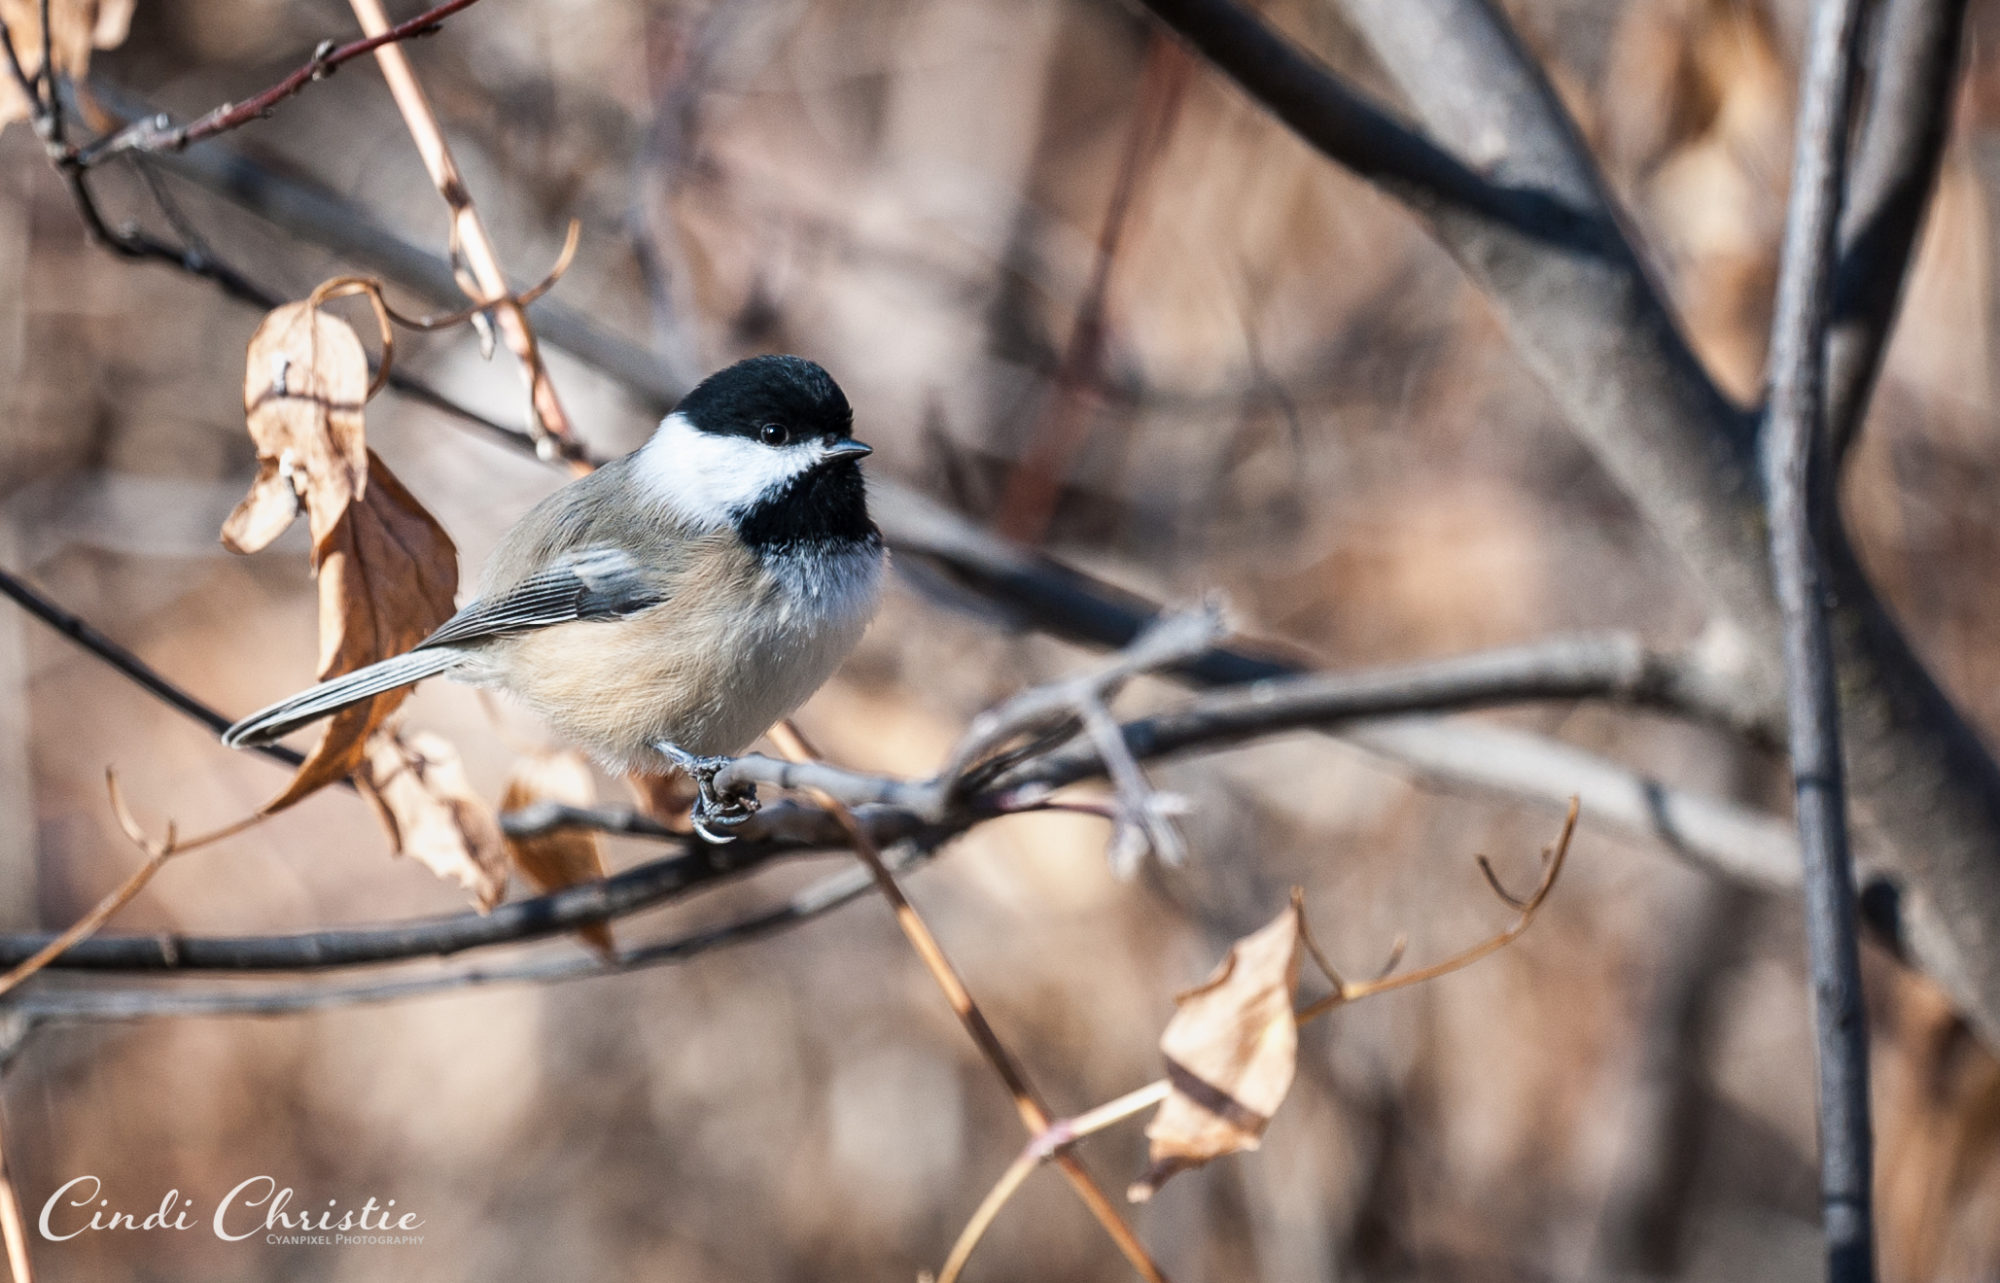 A black-capped chickadee flits among the trees in the yard of Hap and Raylene Lomonaco on Nov. 7, 2017, in Salmon, Idaho. (© 2017 Cindi Christie/Cyanpixel)